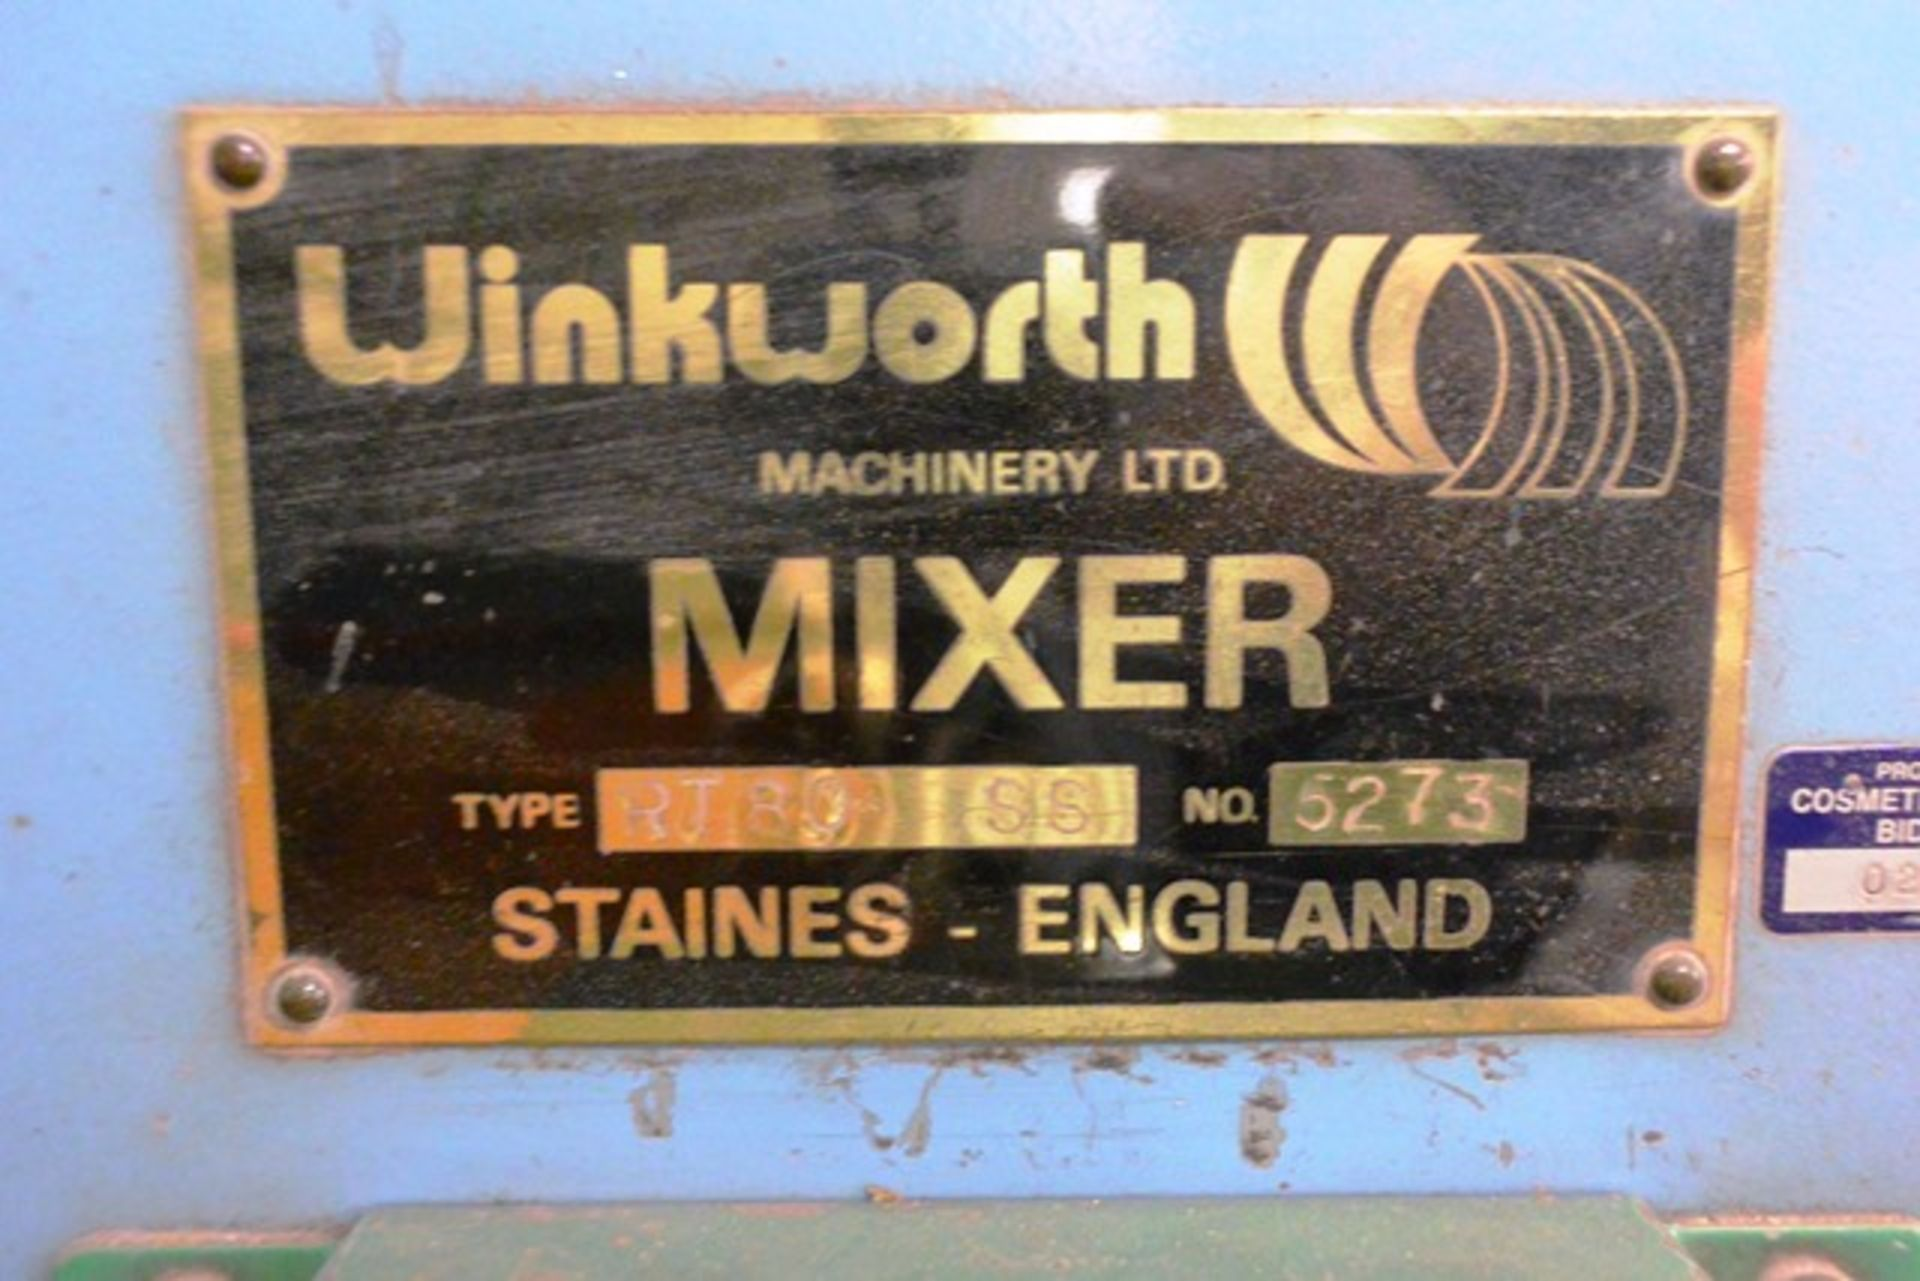 Winkworth RT80 SS mixer, serial no. 5273 (please note: currently disconnected) - Image 5 of 5